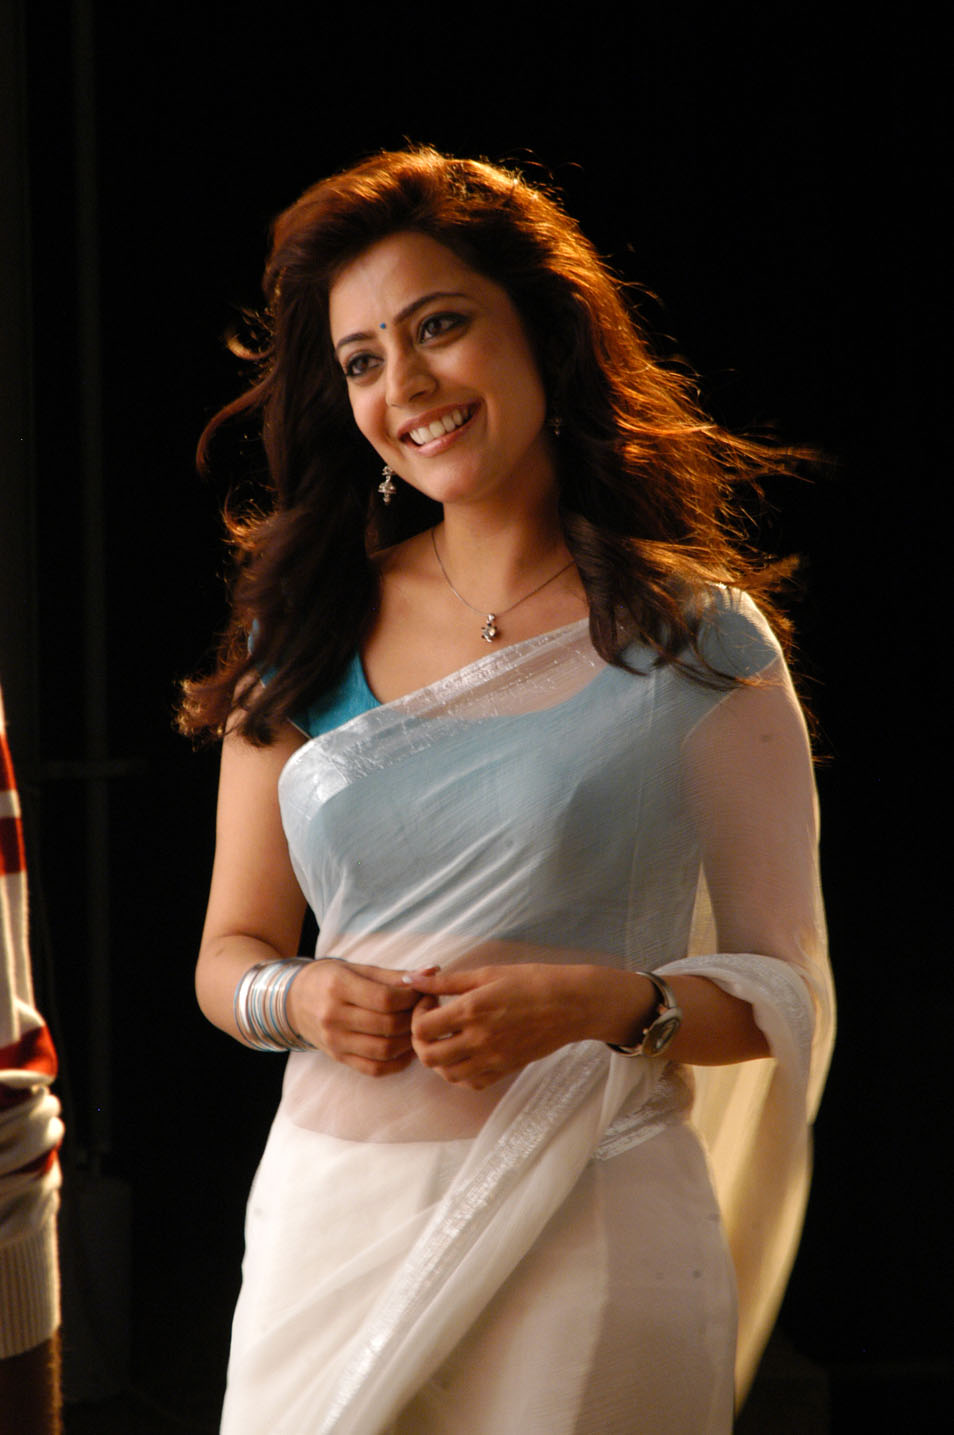 Girls Wallpaper Without Bra Nisha Agarwal Hd Wallpapers Tollywood Official Film News